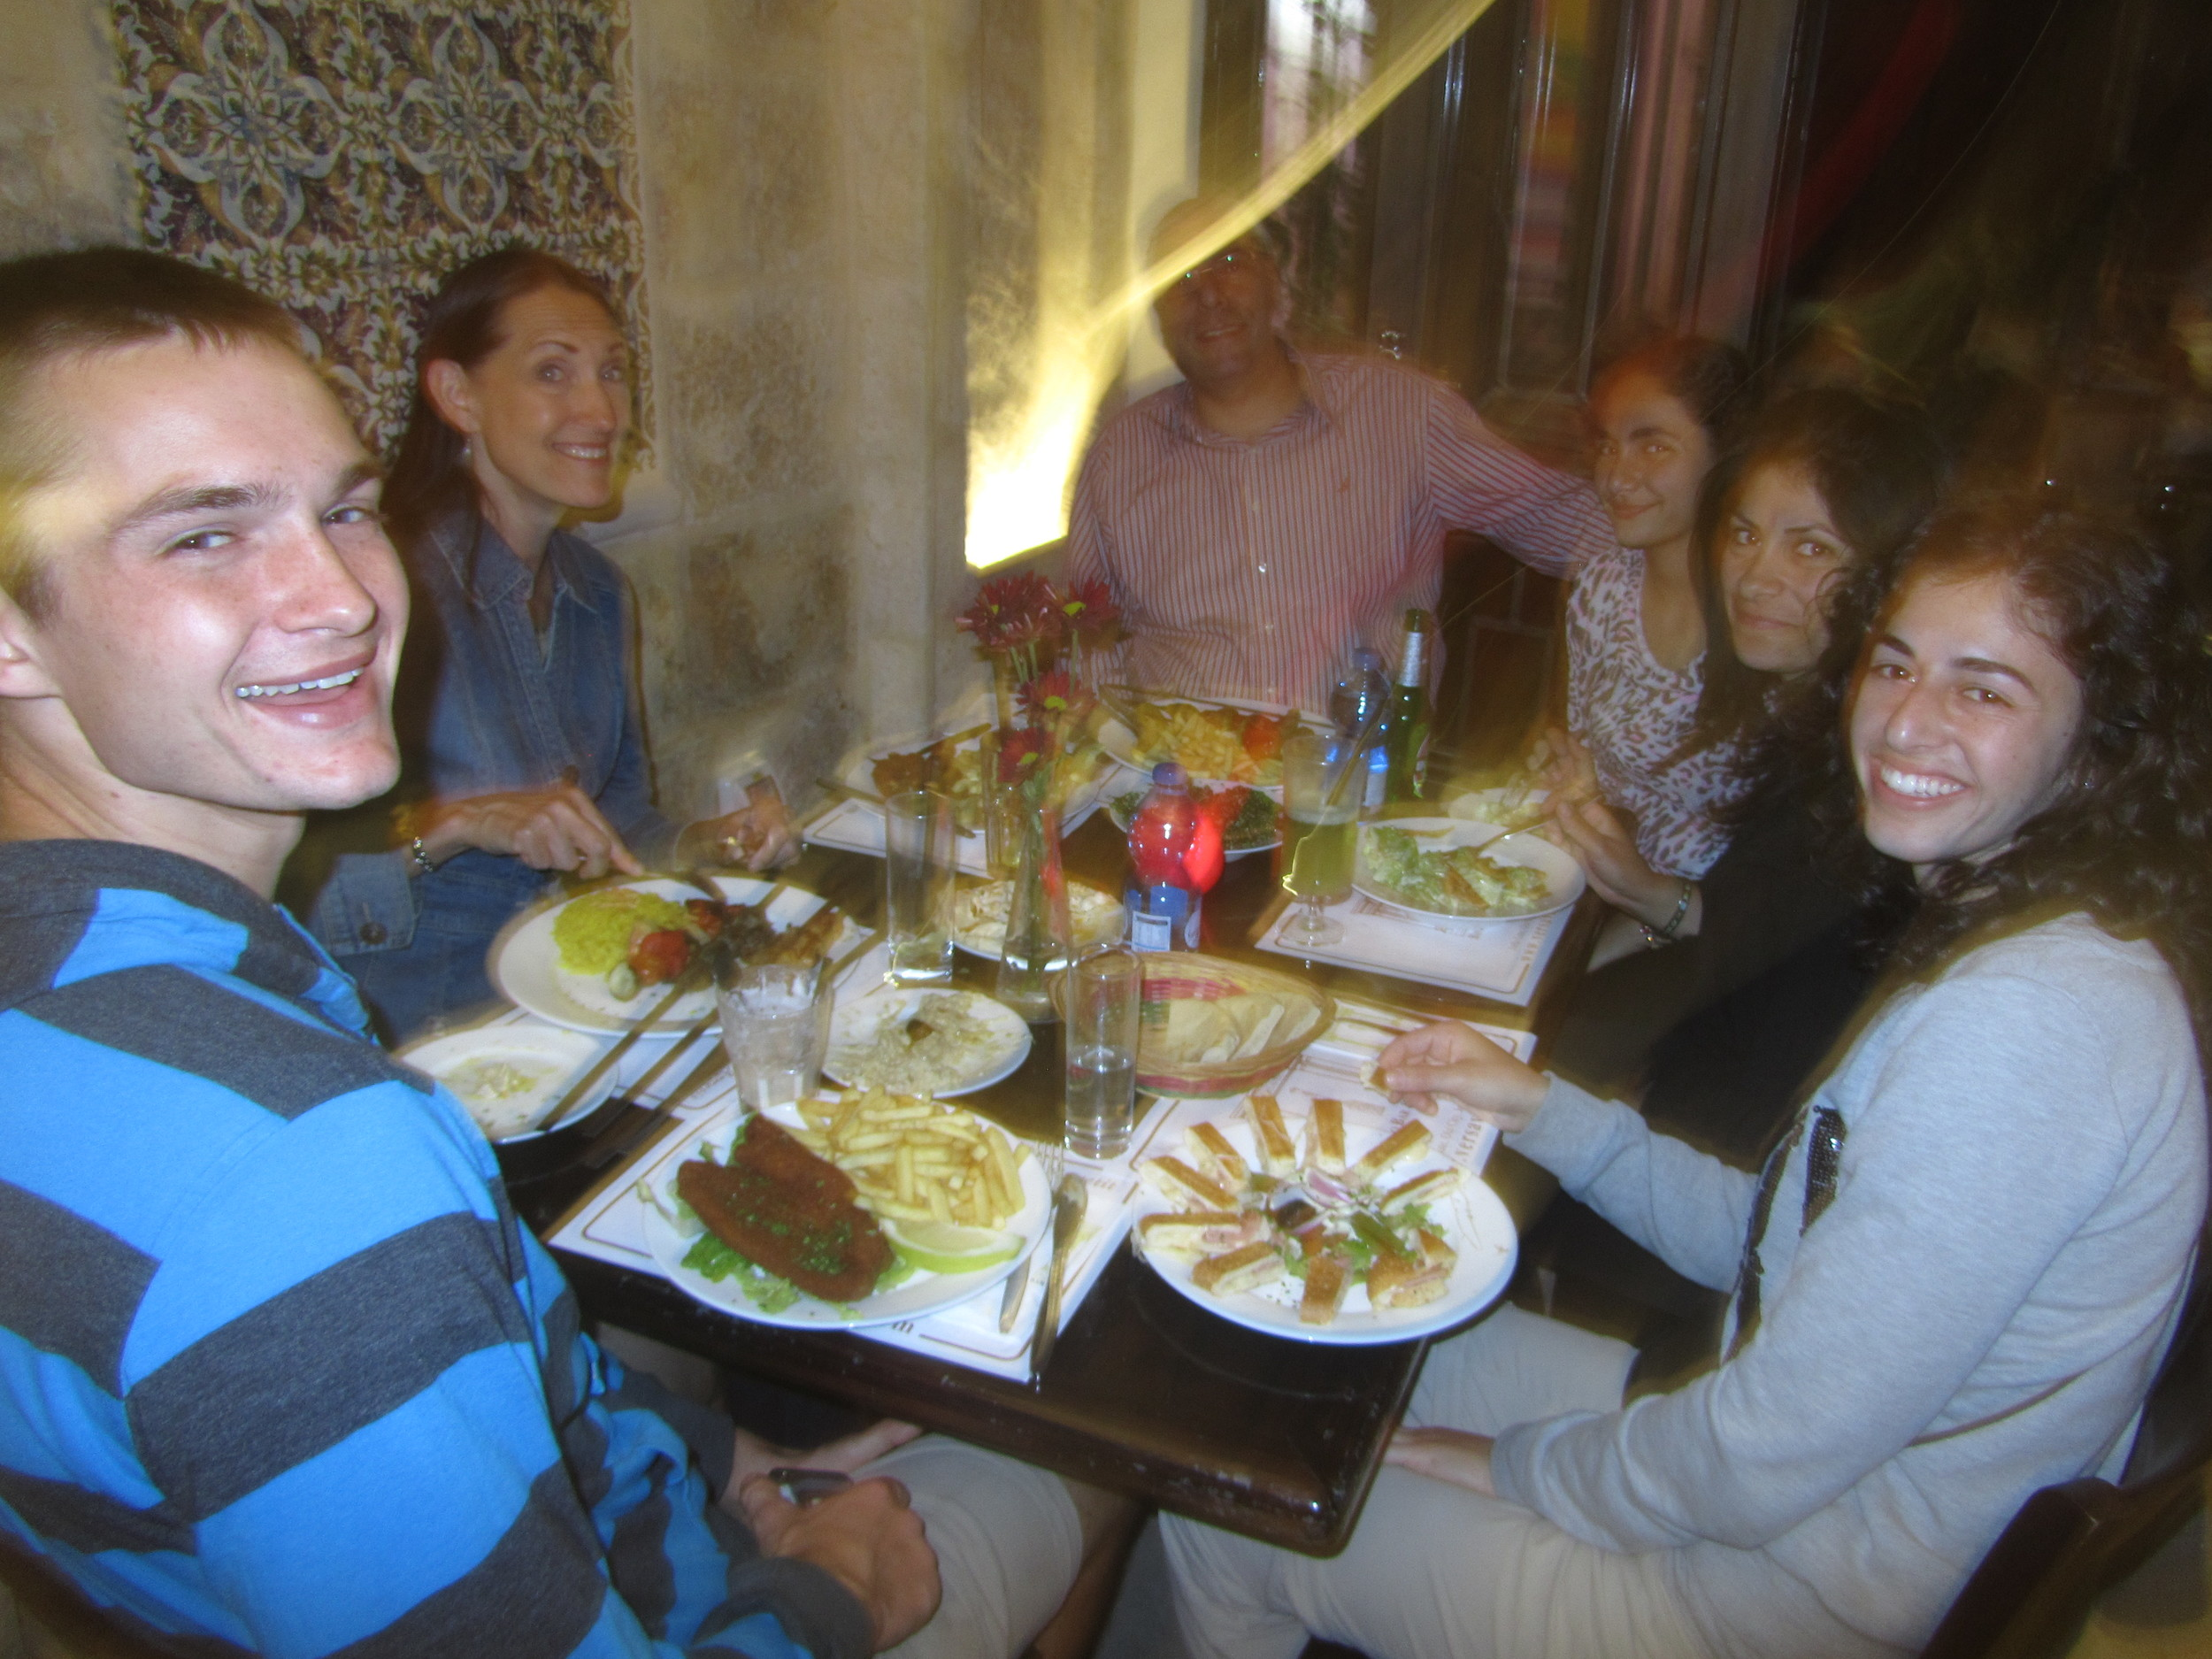 Our lovely dinner with our dear friends Yousef and Rula Katanasho and their wonderful extended family